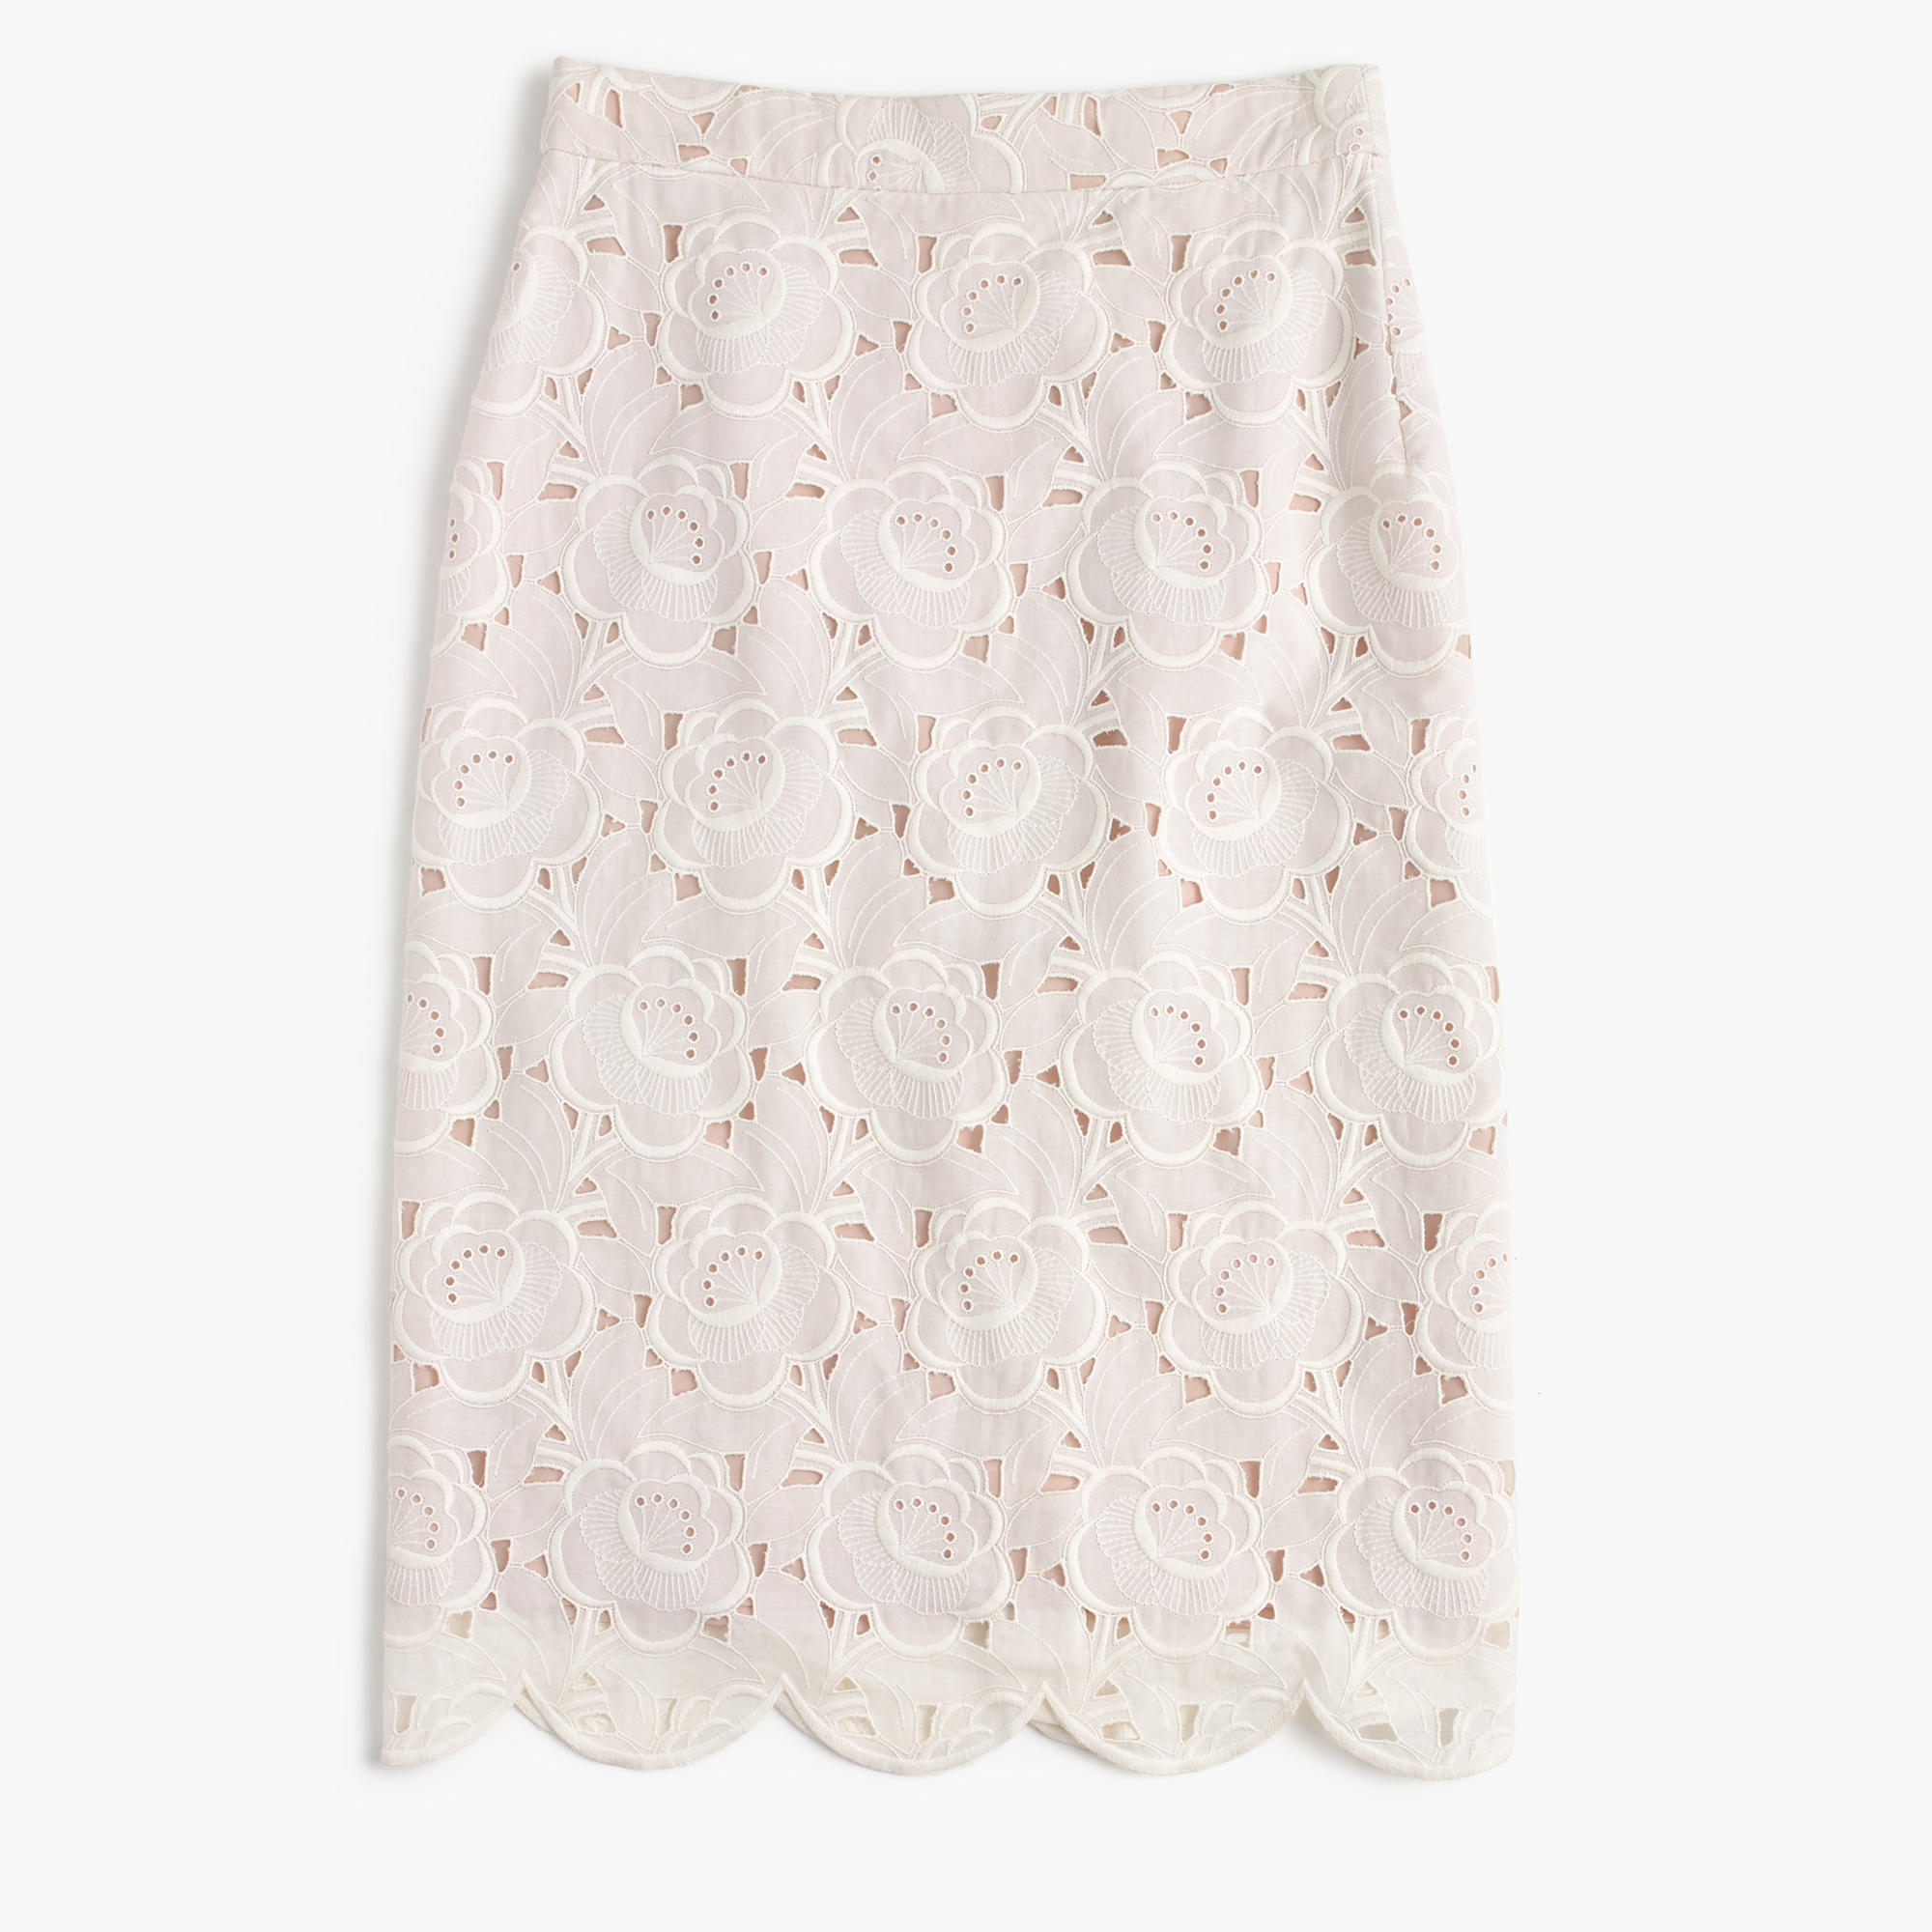 J Crew COLLECTION PENCIL SKIRT IN AUSTRIAN LACE